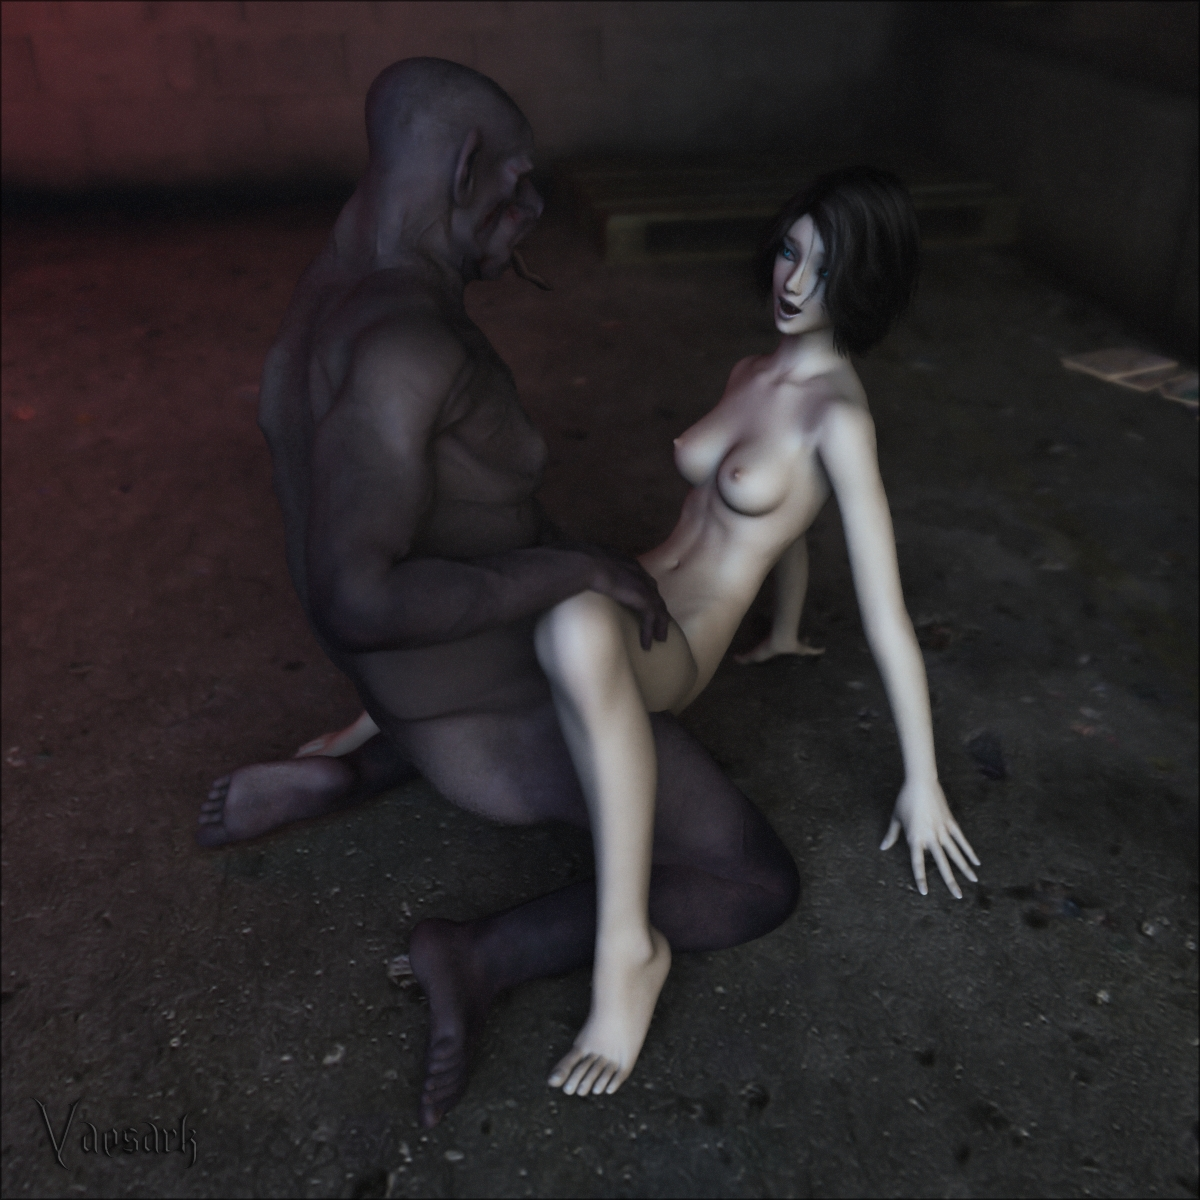 Underworld 3d sex pic erotic scenes